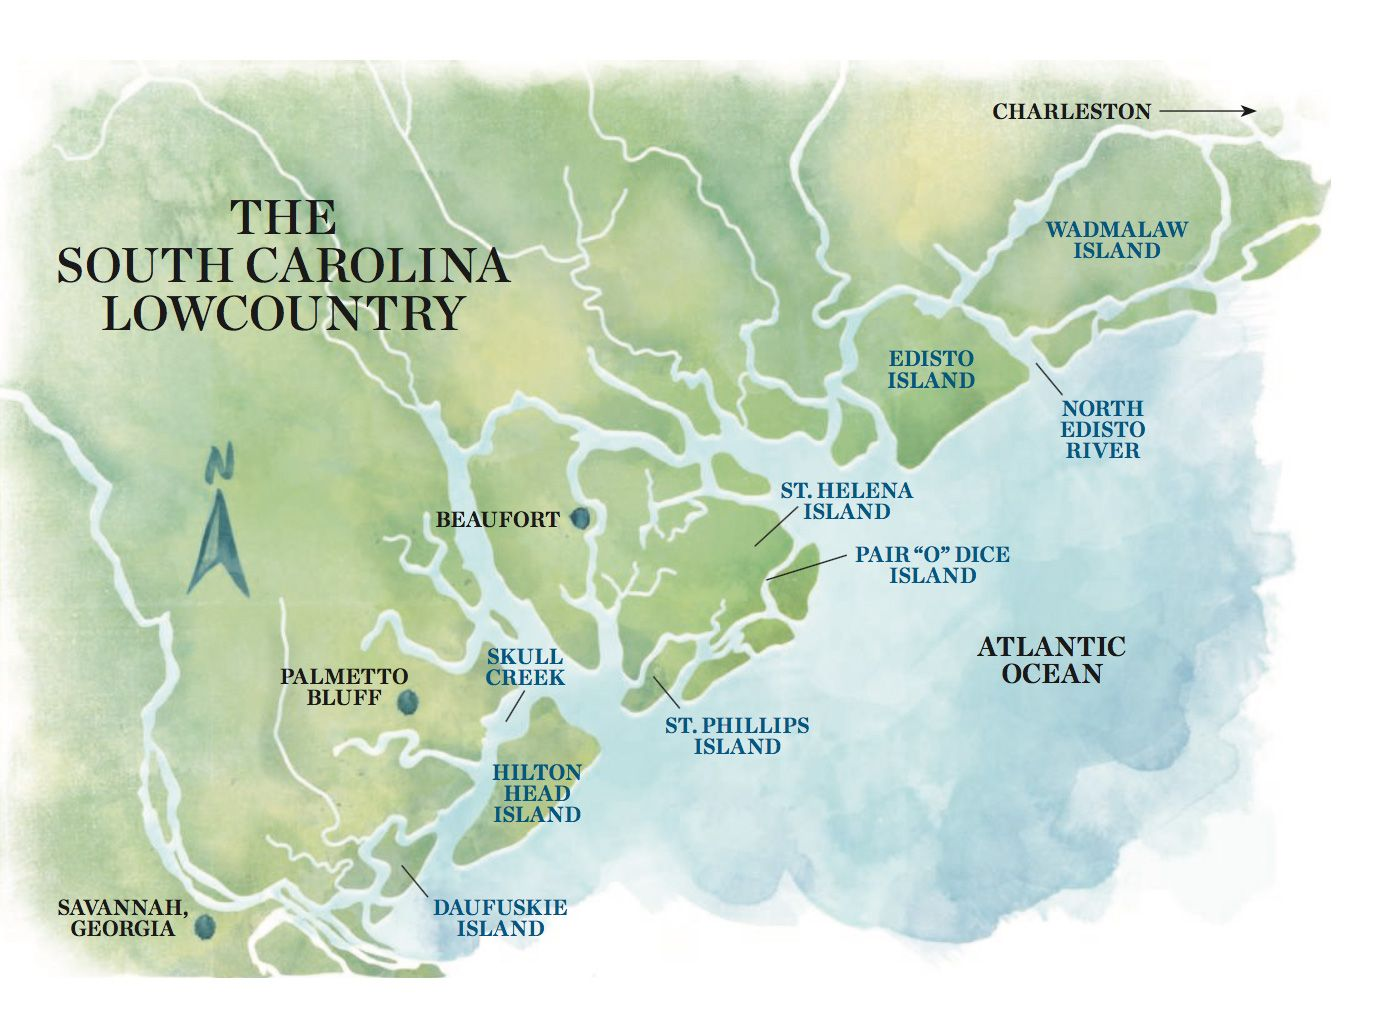 Pin On Lowcountry Maps